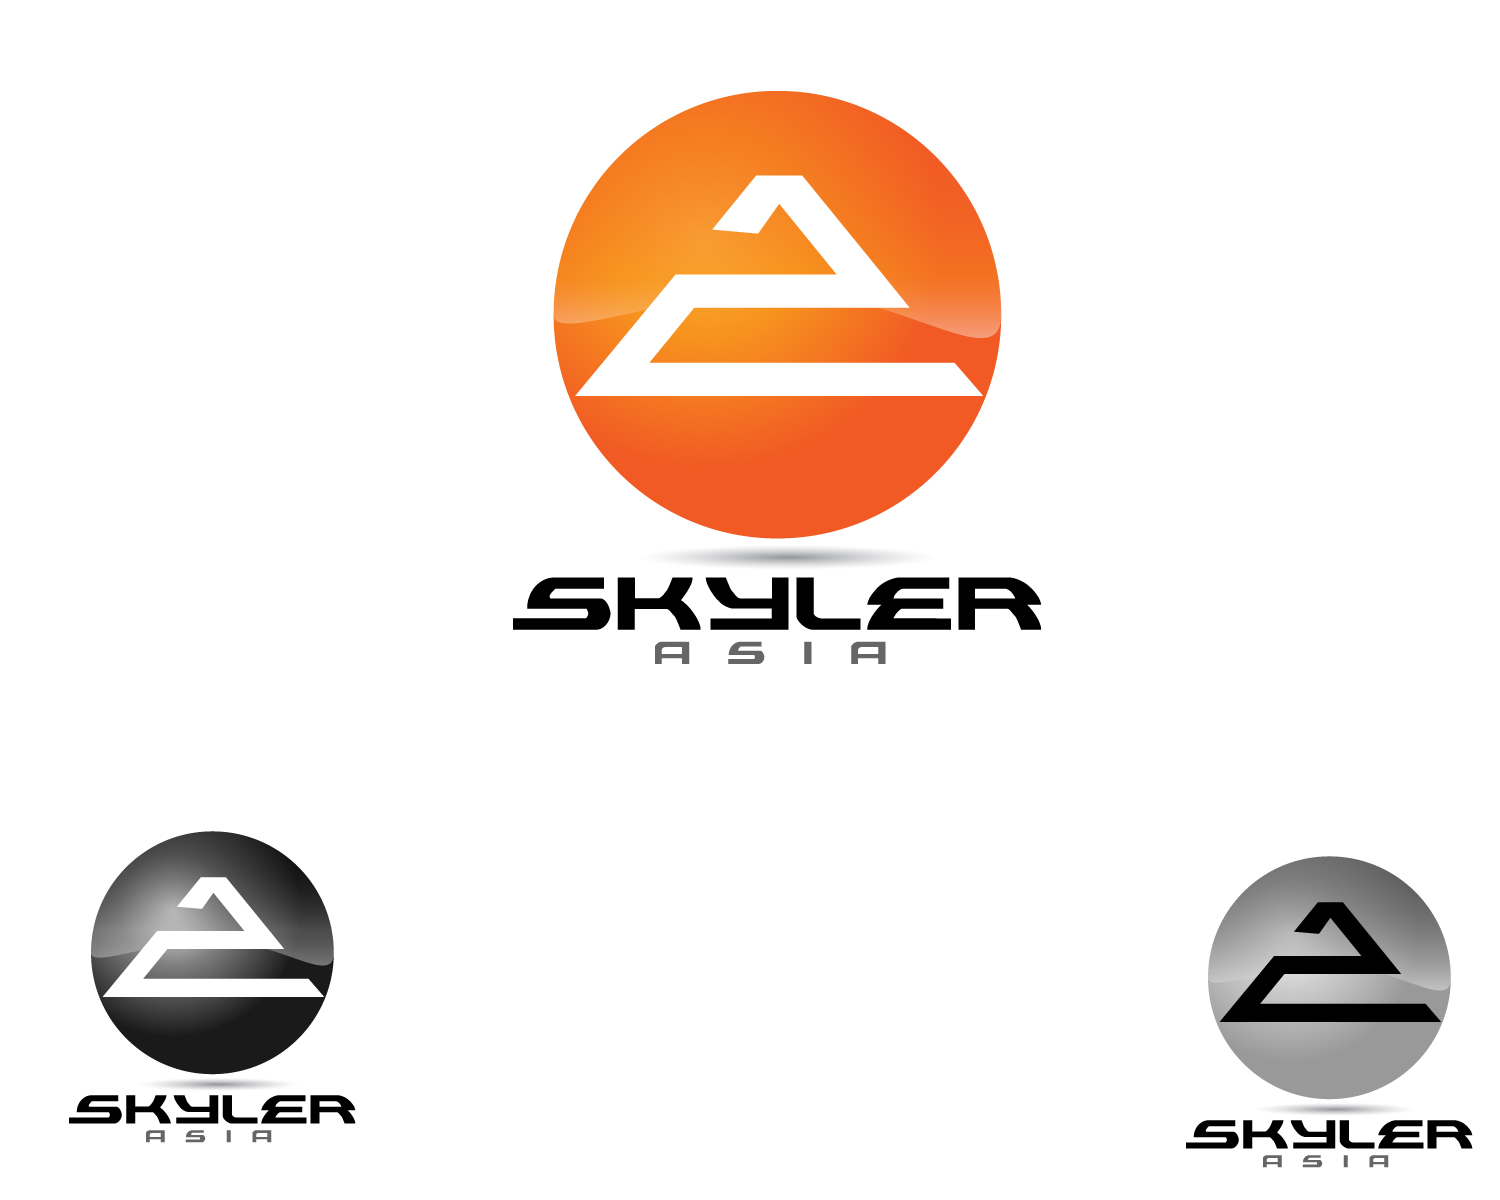 Logo Design by Jagdeep Singh - Entry No. 180 in the Logo Design Contest Artistic Logo Design for Skyler.Asia.